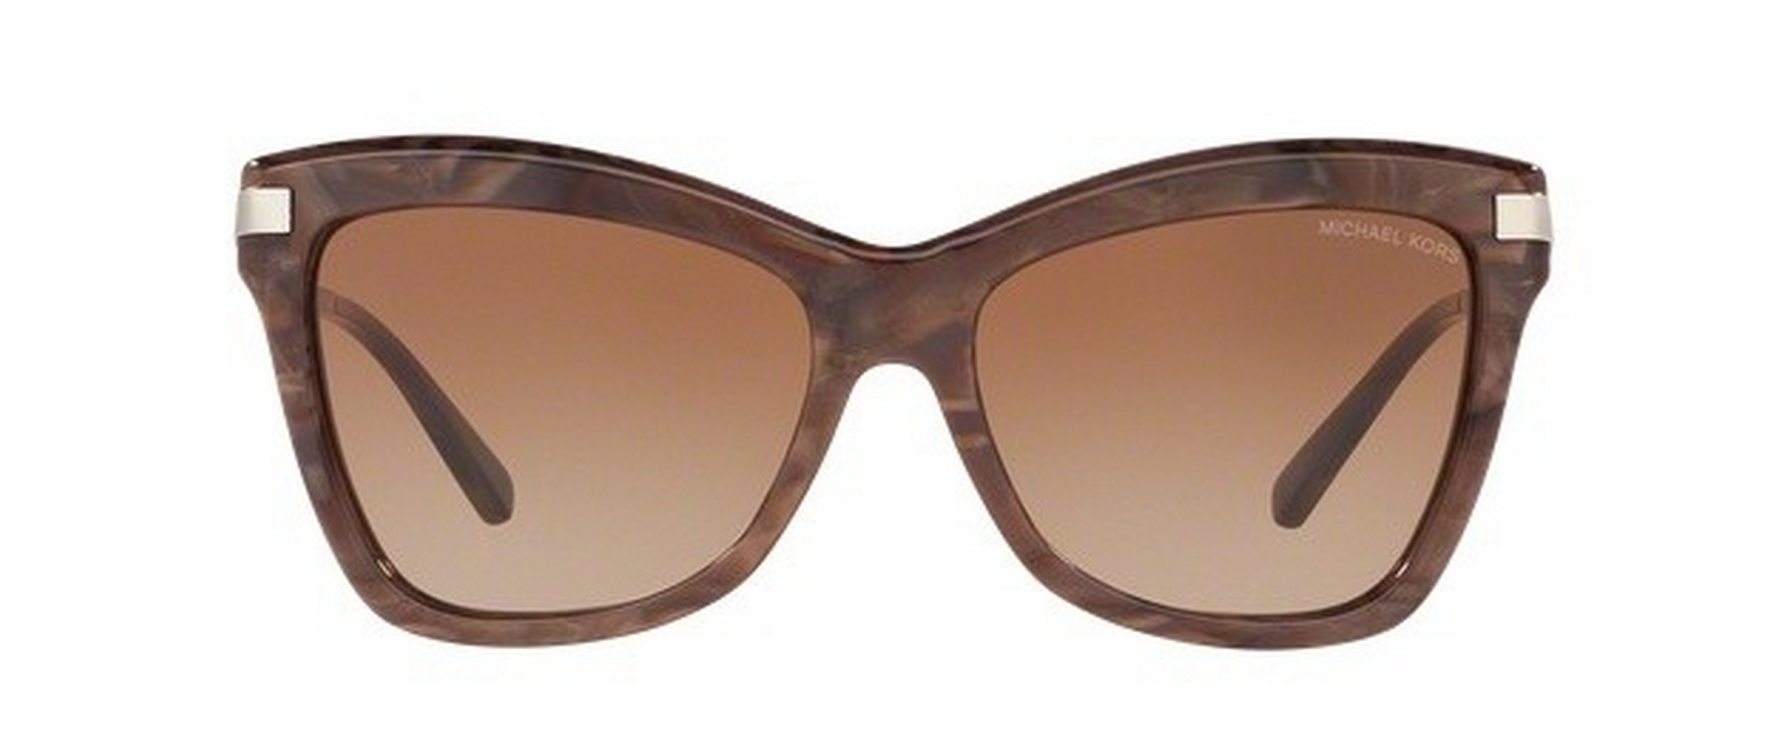 Michael Kors - MICHAEL KORS Sunglasses MK2027 317111 Black 56MM -  Walmart.com 69351d04fb